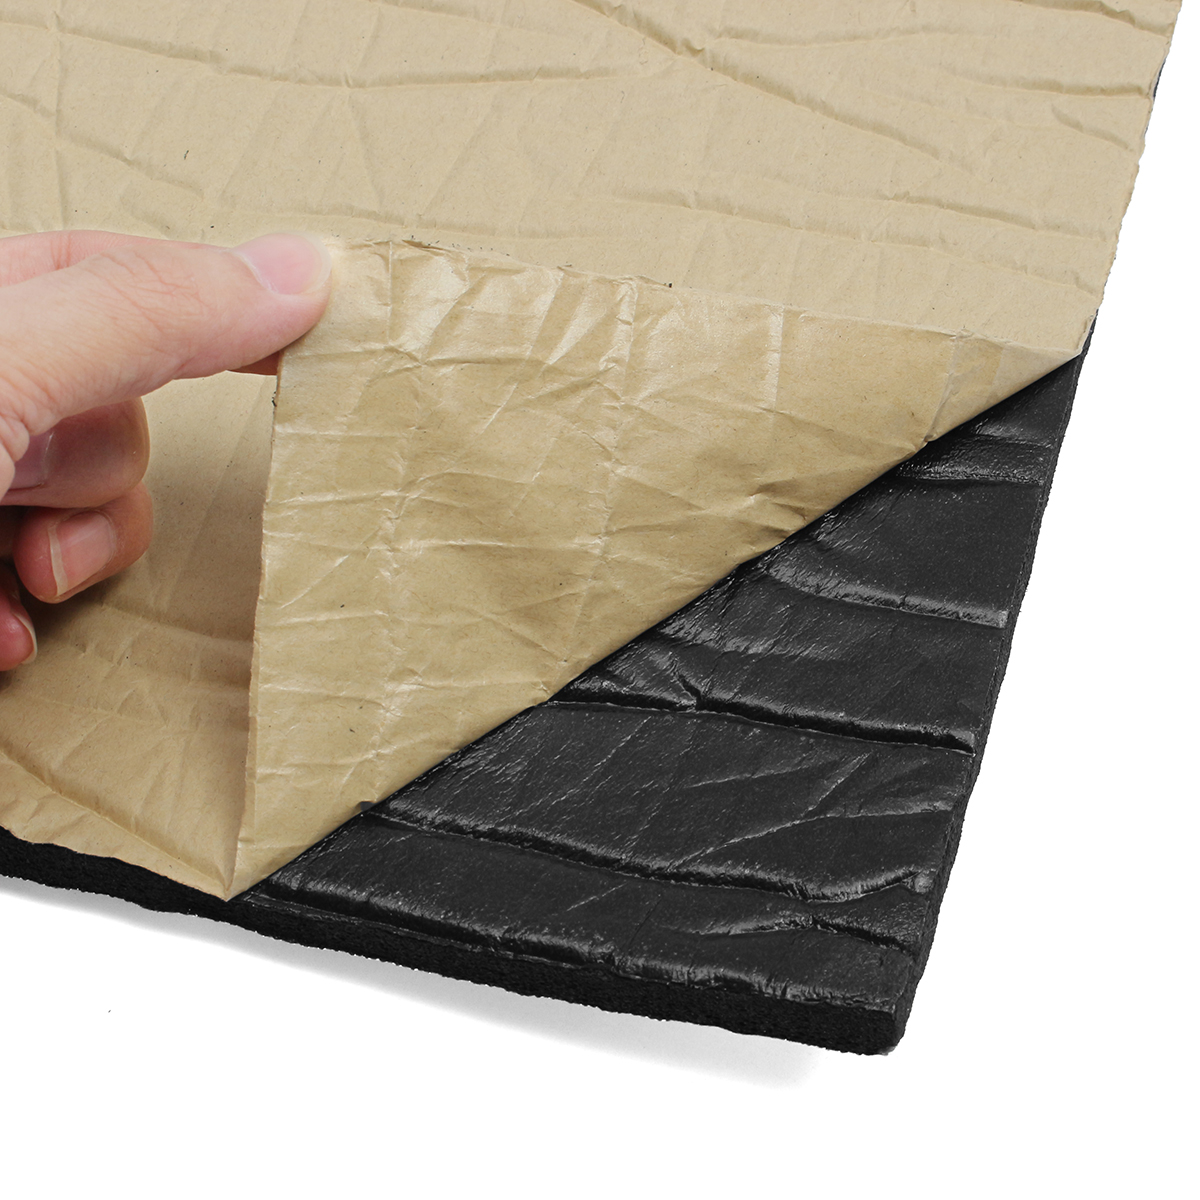 10mm Car Van Sound Proofing Deadening Insulation Closed Cell Foam Car Hood Insulation